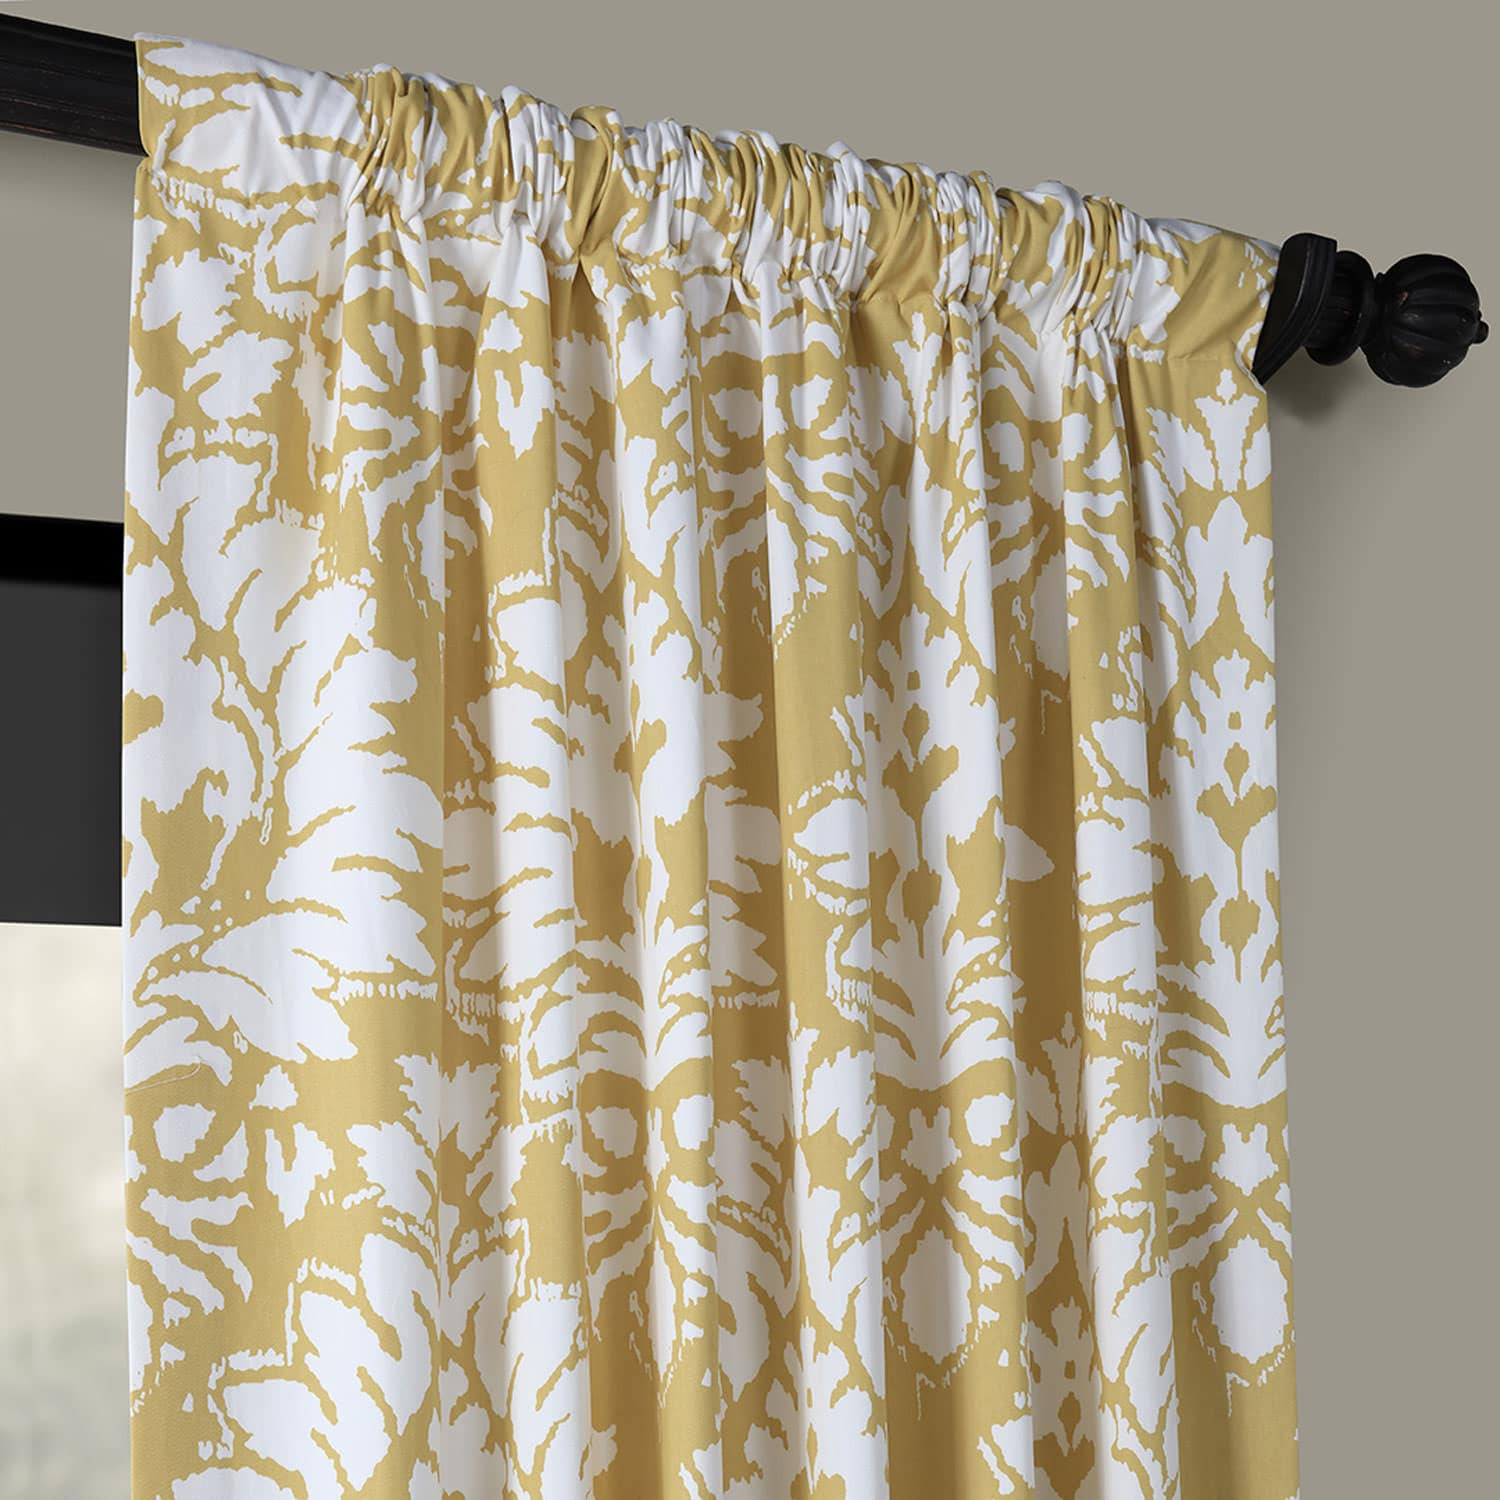 Lacuna Sun Printed Cotton Twill Curtain Throughout Mecca Printed Cotton Single Curtain Panels (View 12 of 20)